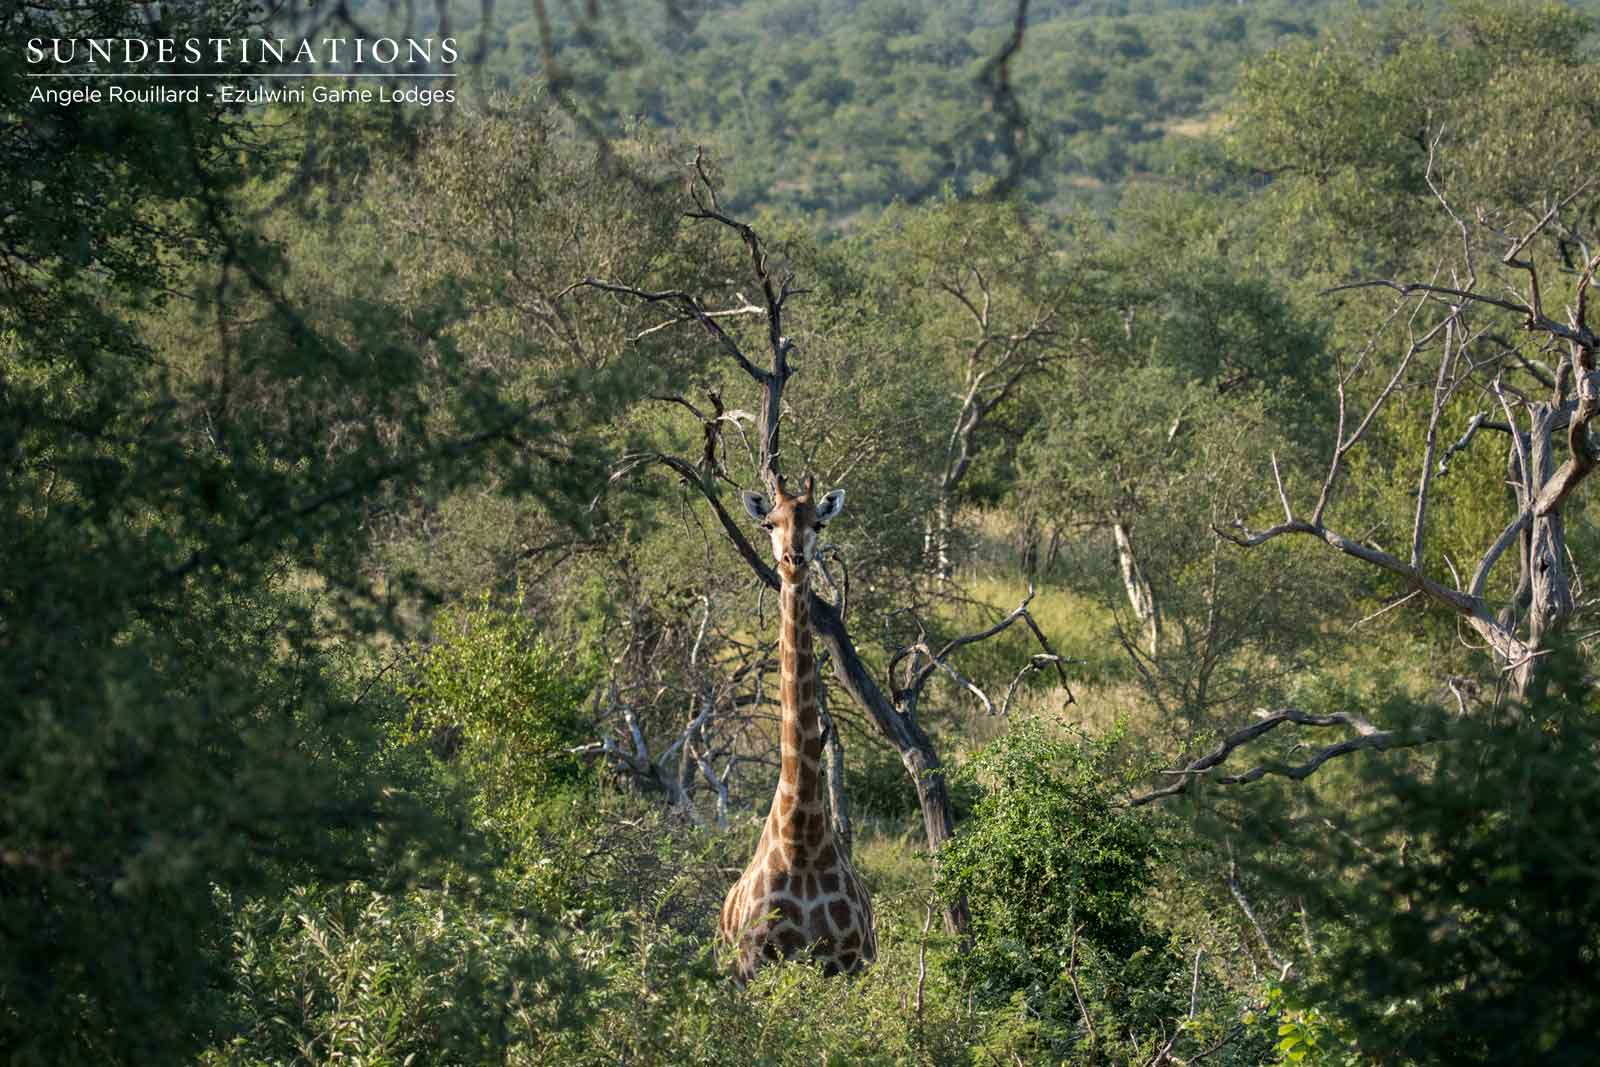 Ezulwini's Commonly Spotted Giraffe